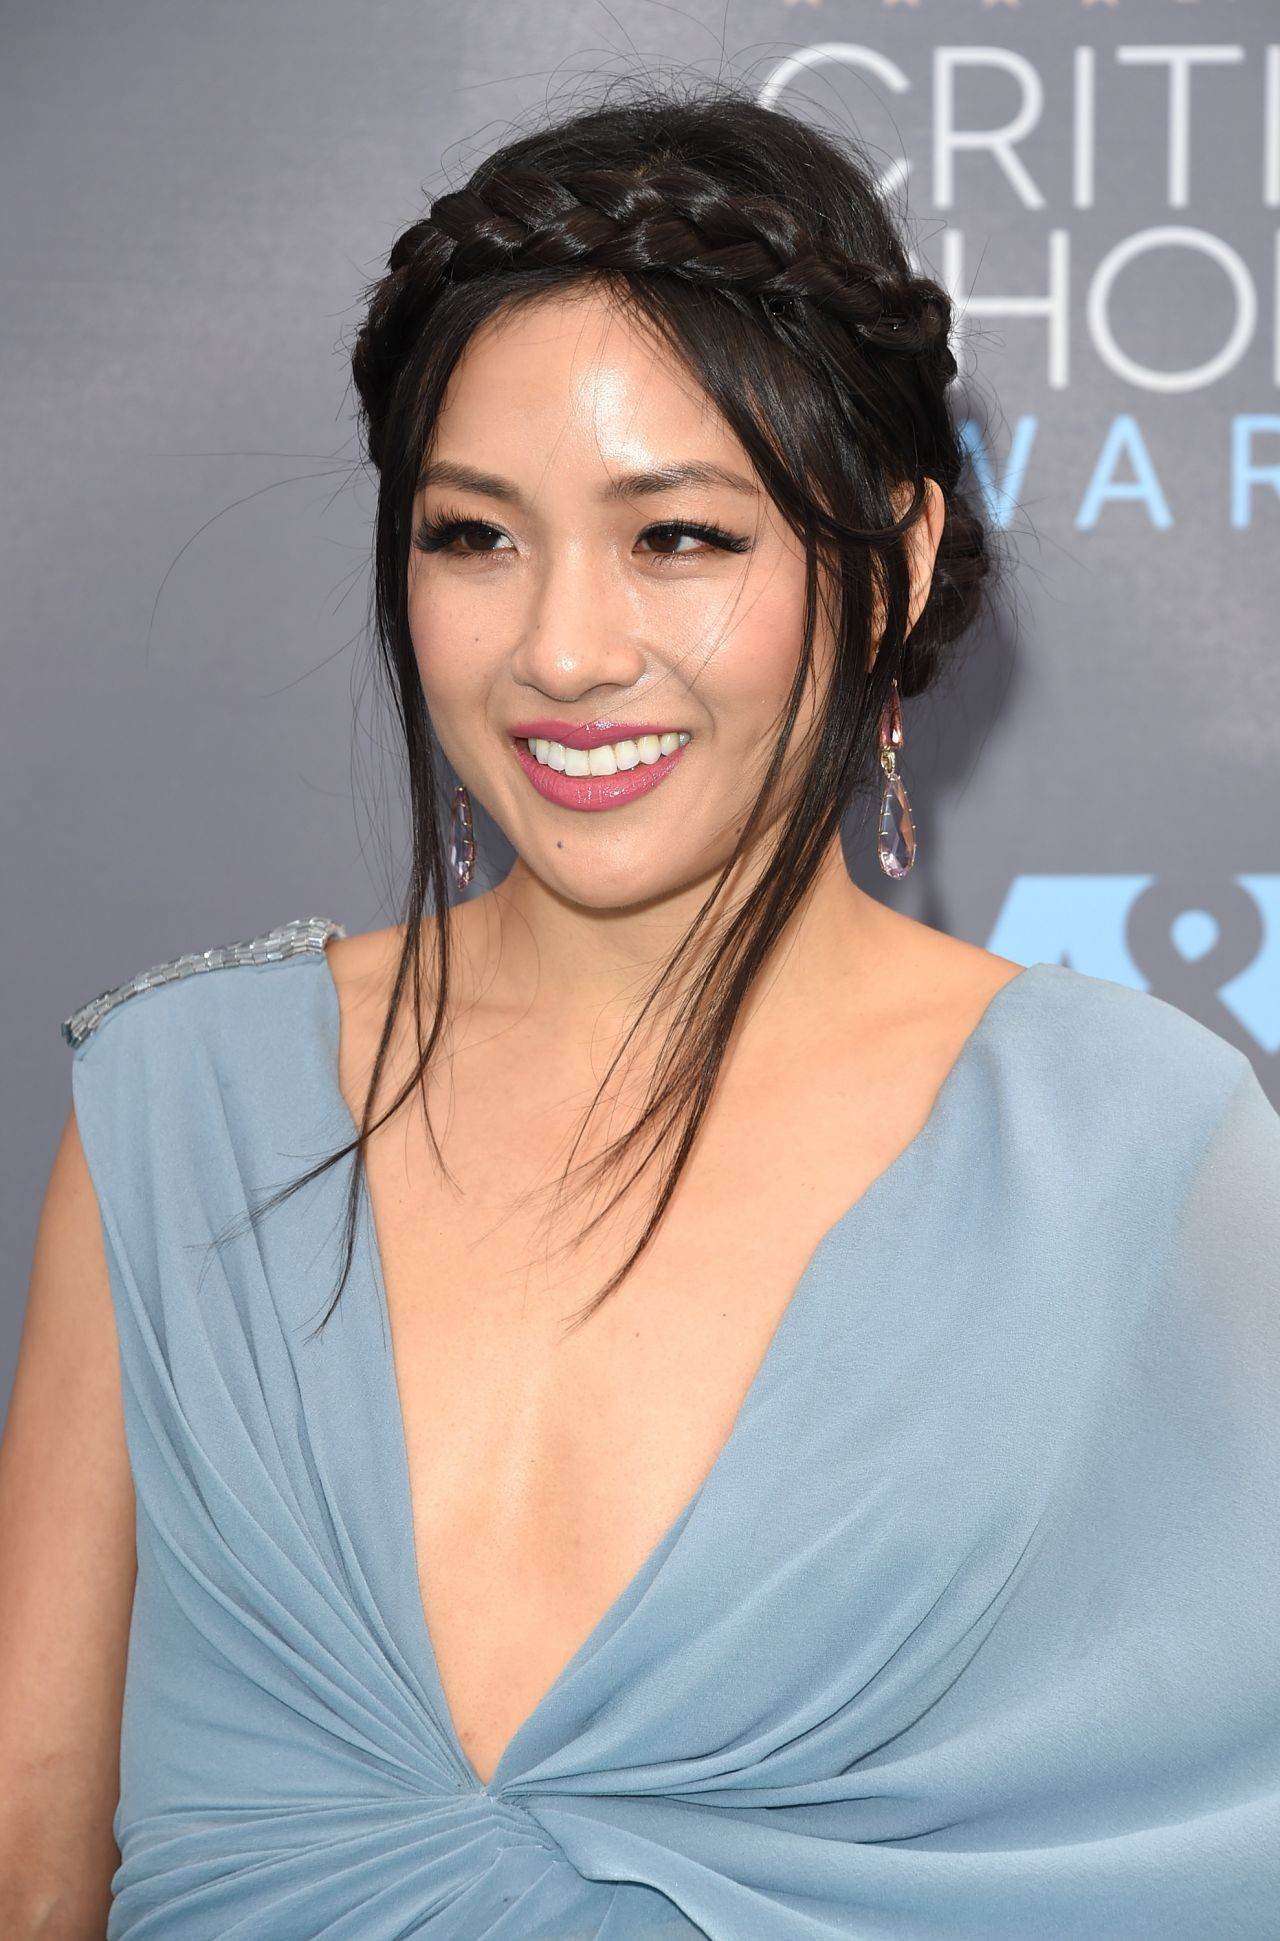 AsAm News   Constance Wu Earned $600 While Stripping in